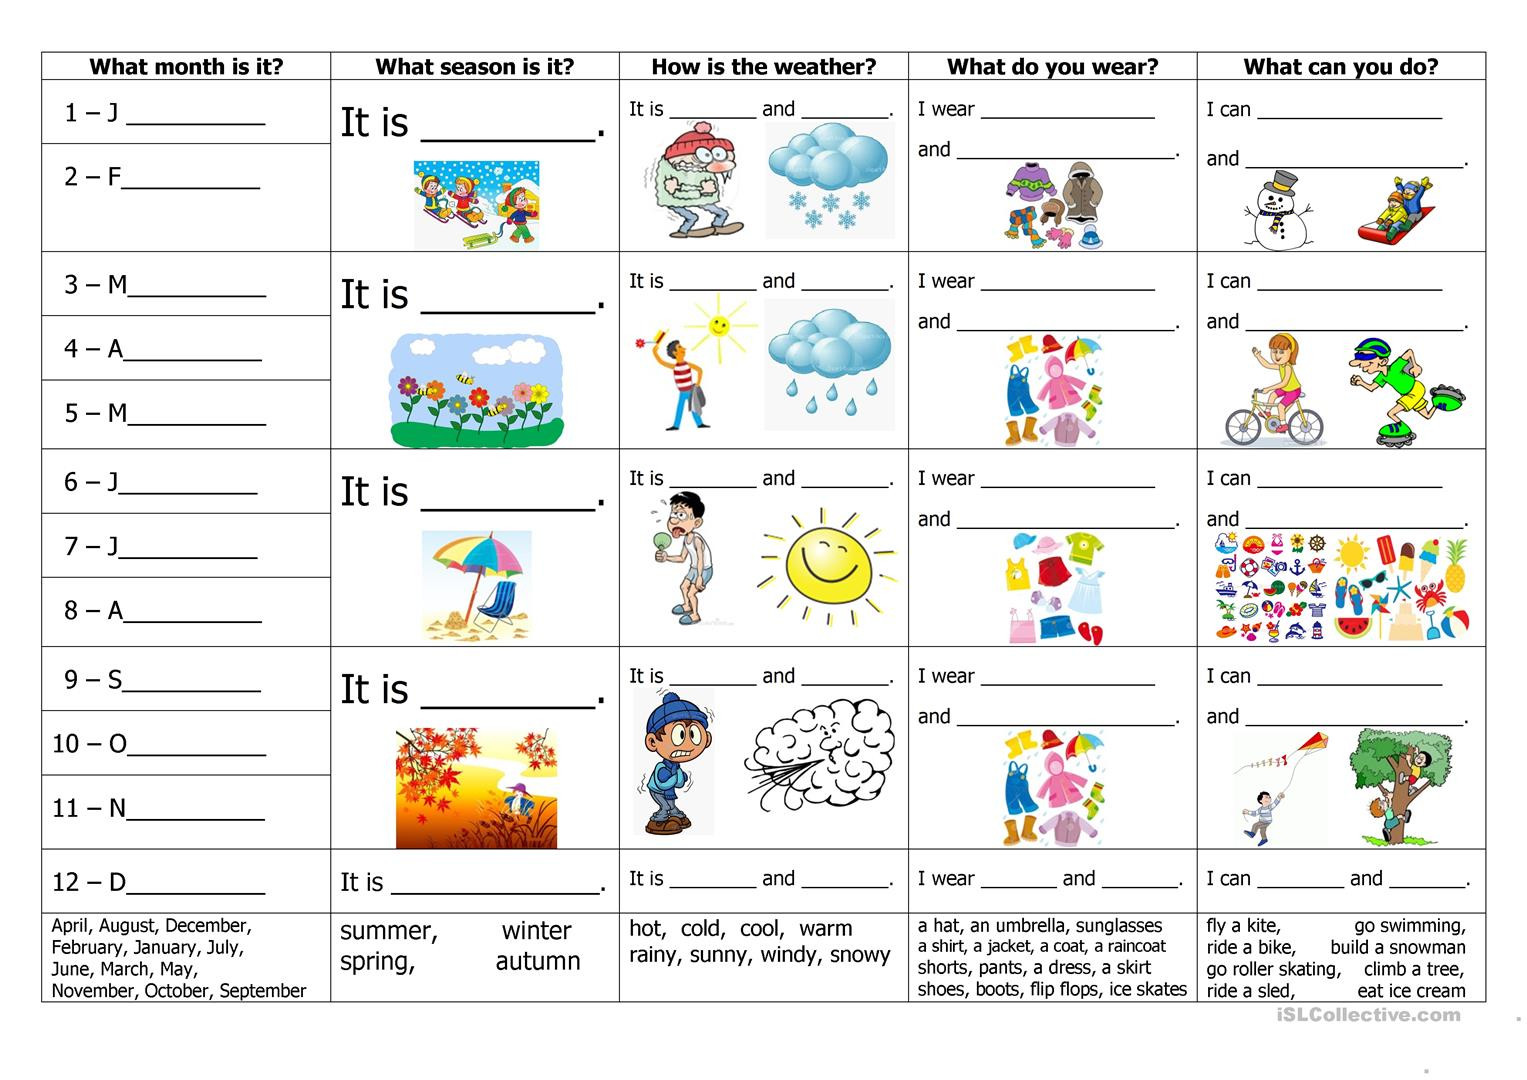 2nd Grade Weather Worksheets Months Seasons Weather Clothes and Activities English Esl